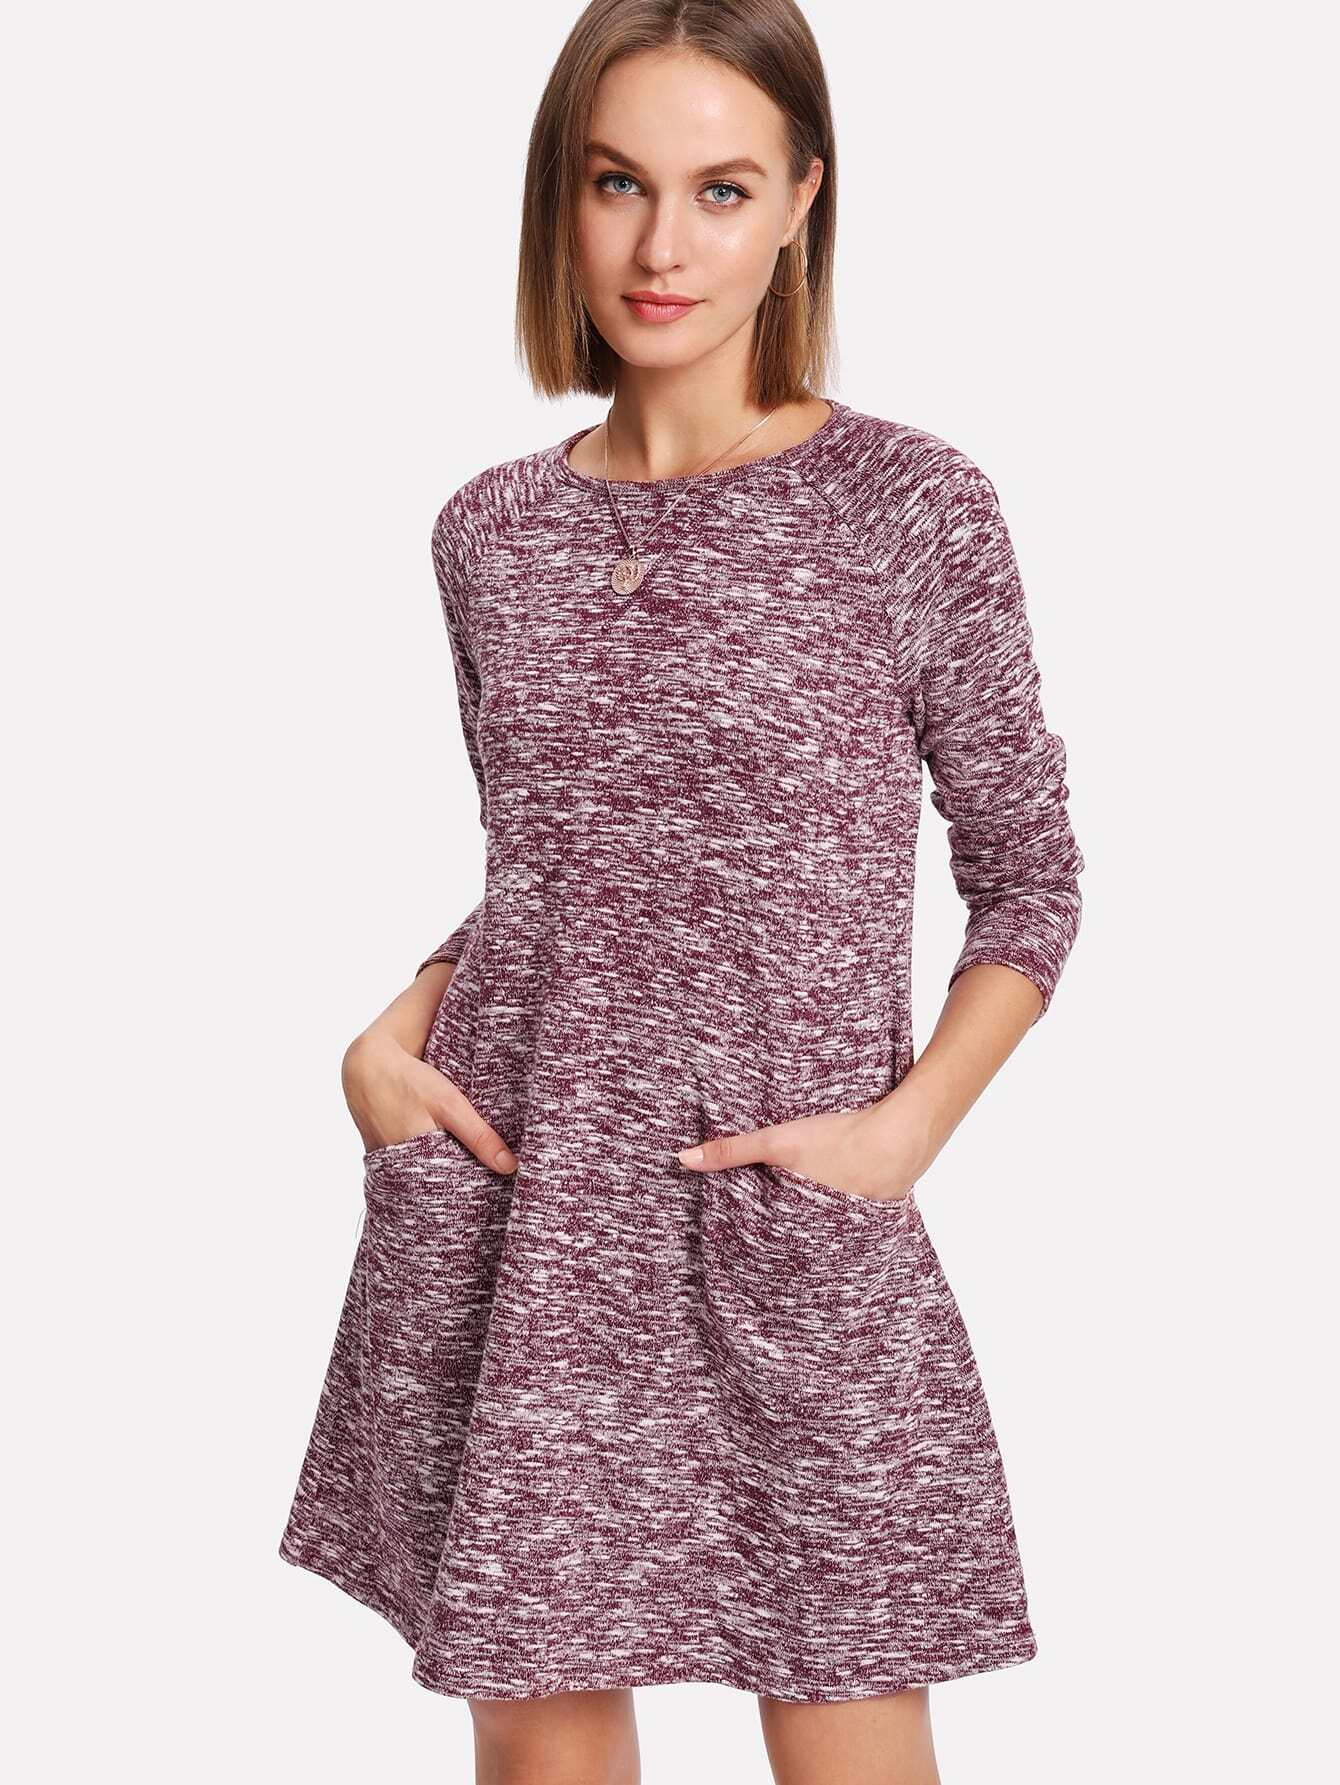 Raglan Sleeve Marled Knit Dress raglan sleeve binding marled crop top